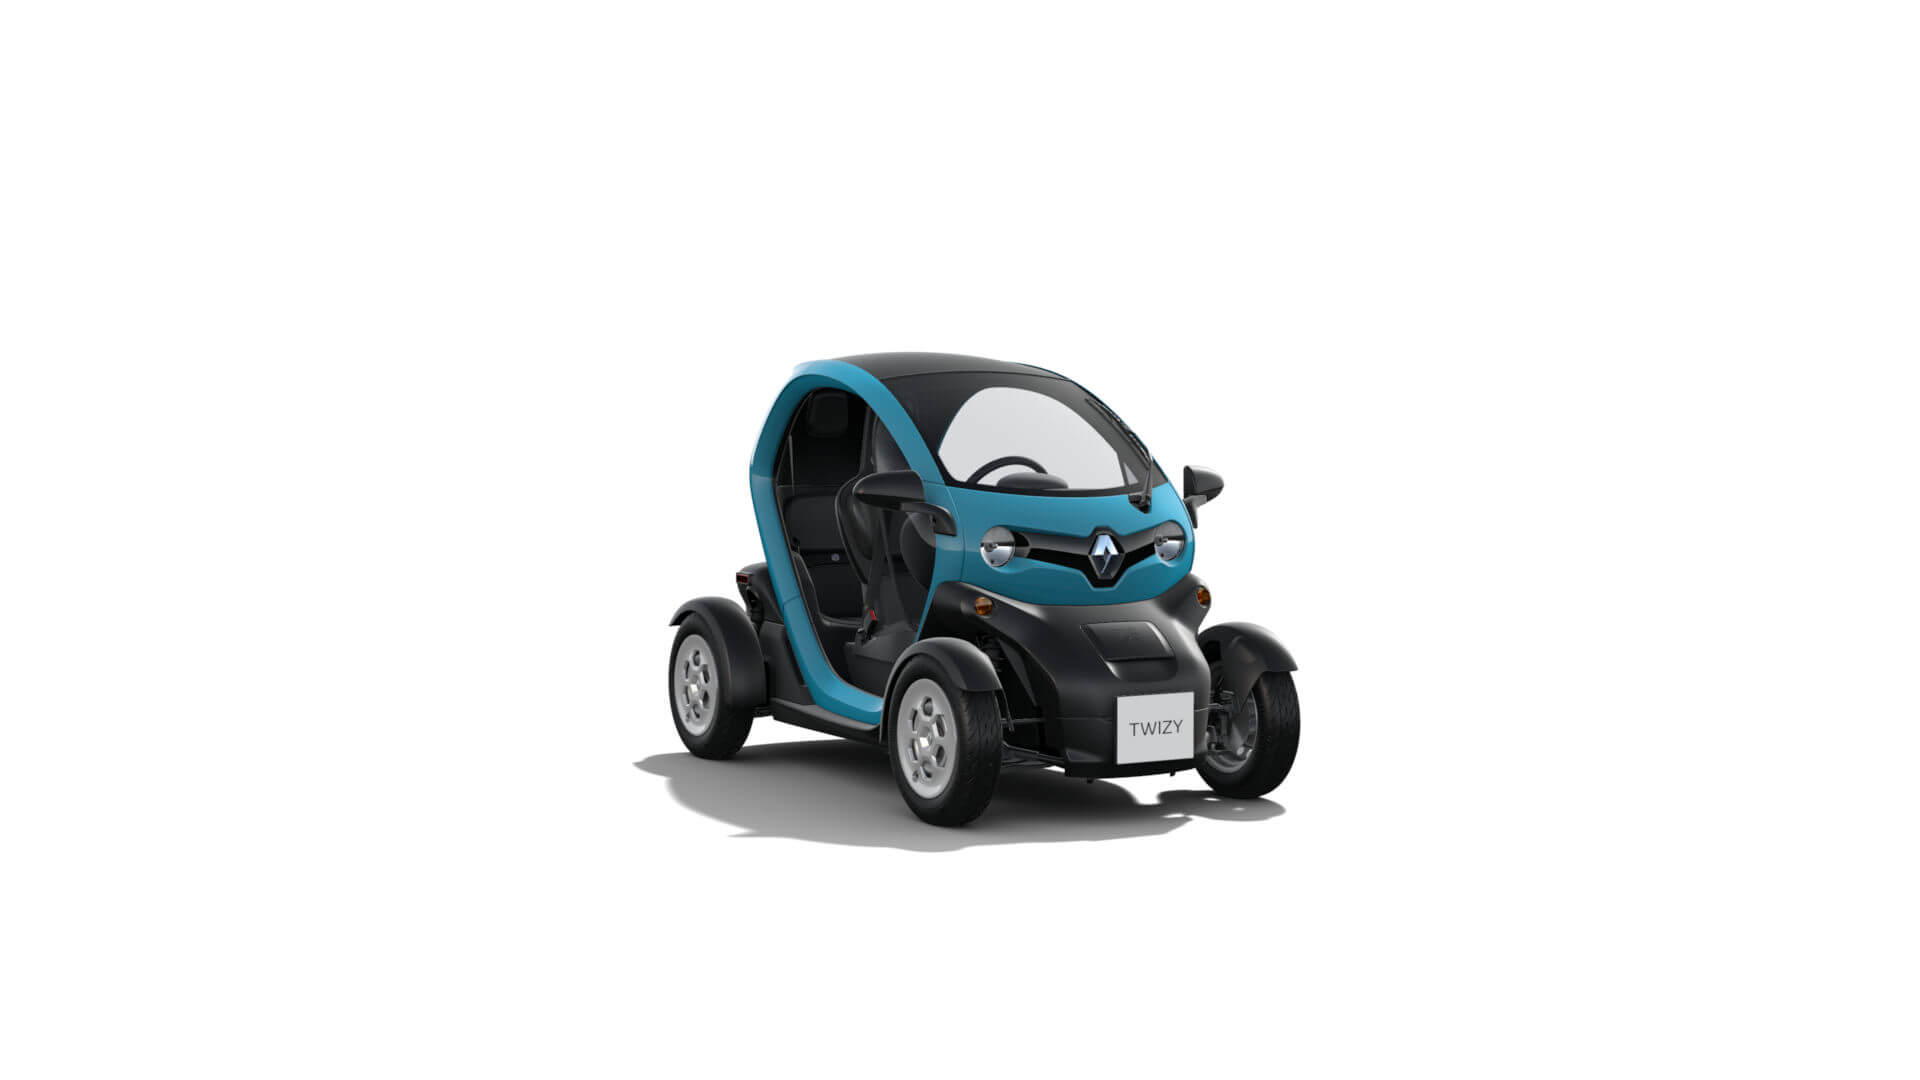 Automodell türkis - Renault Twizy - Renault Ahrens Hannover